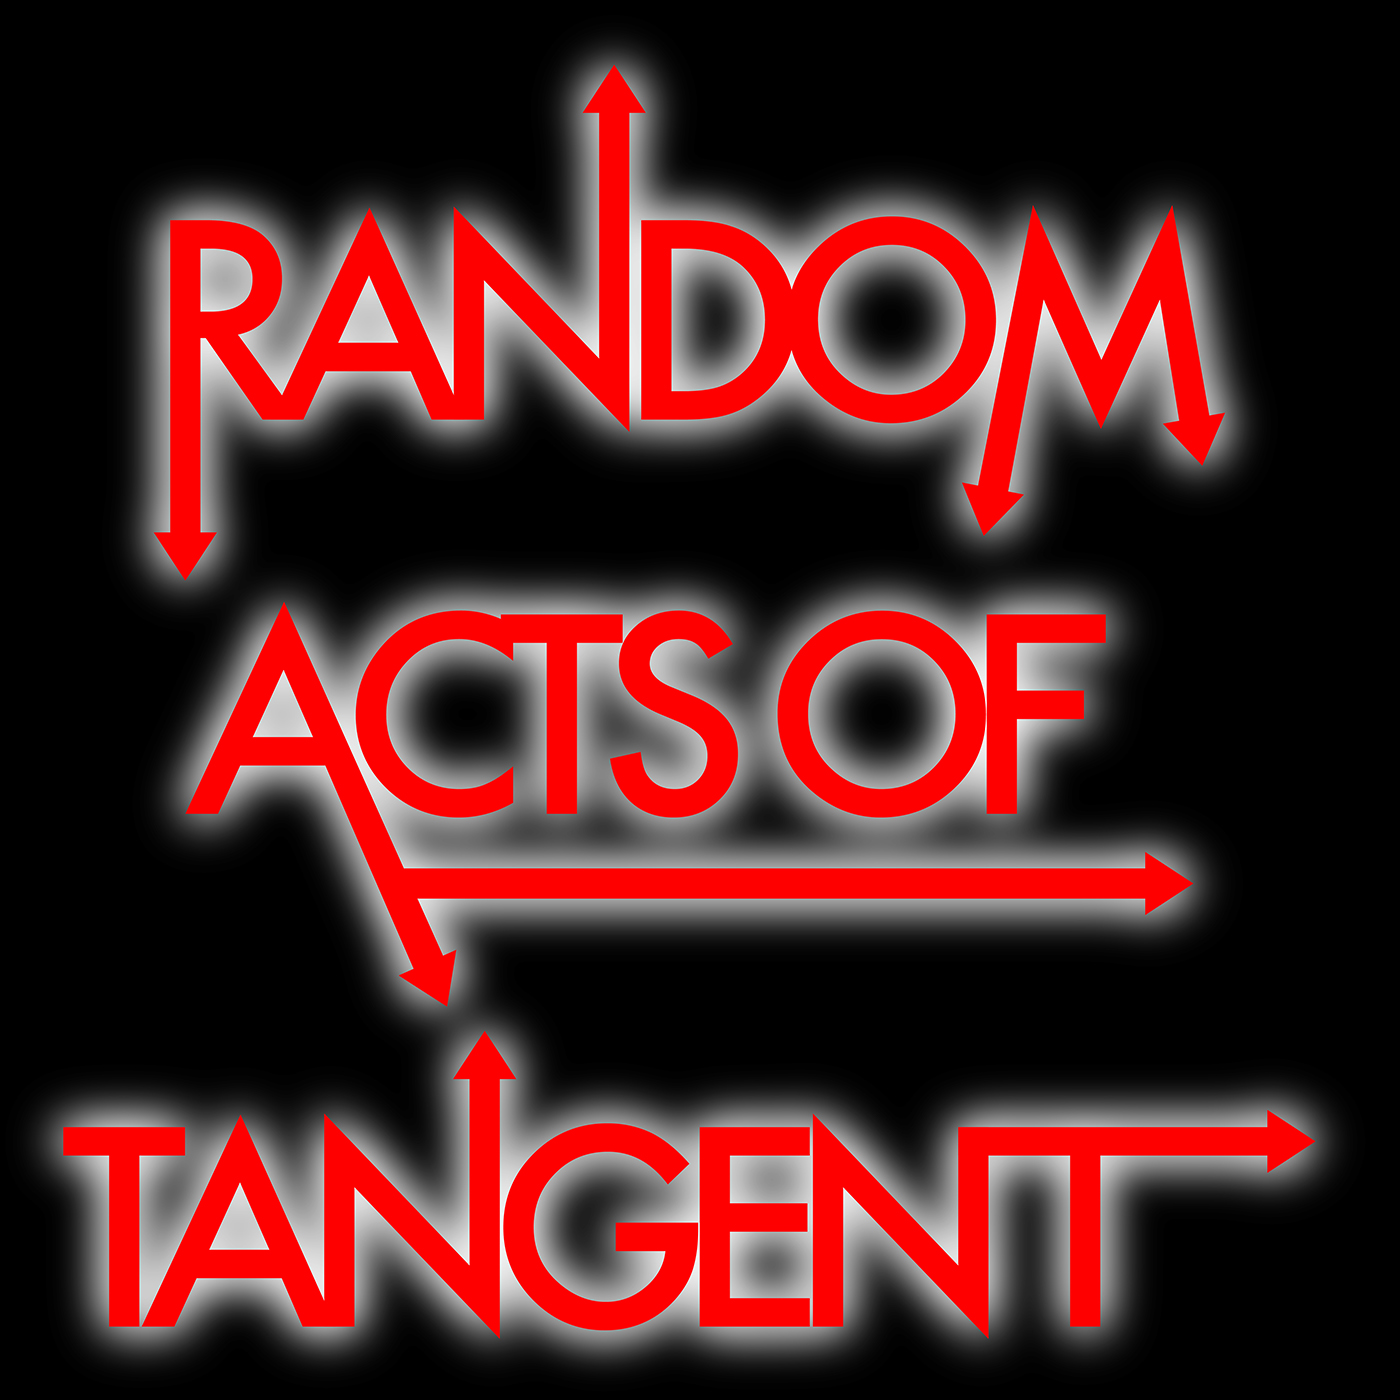 Random Act of Tangent